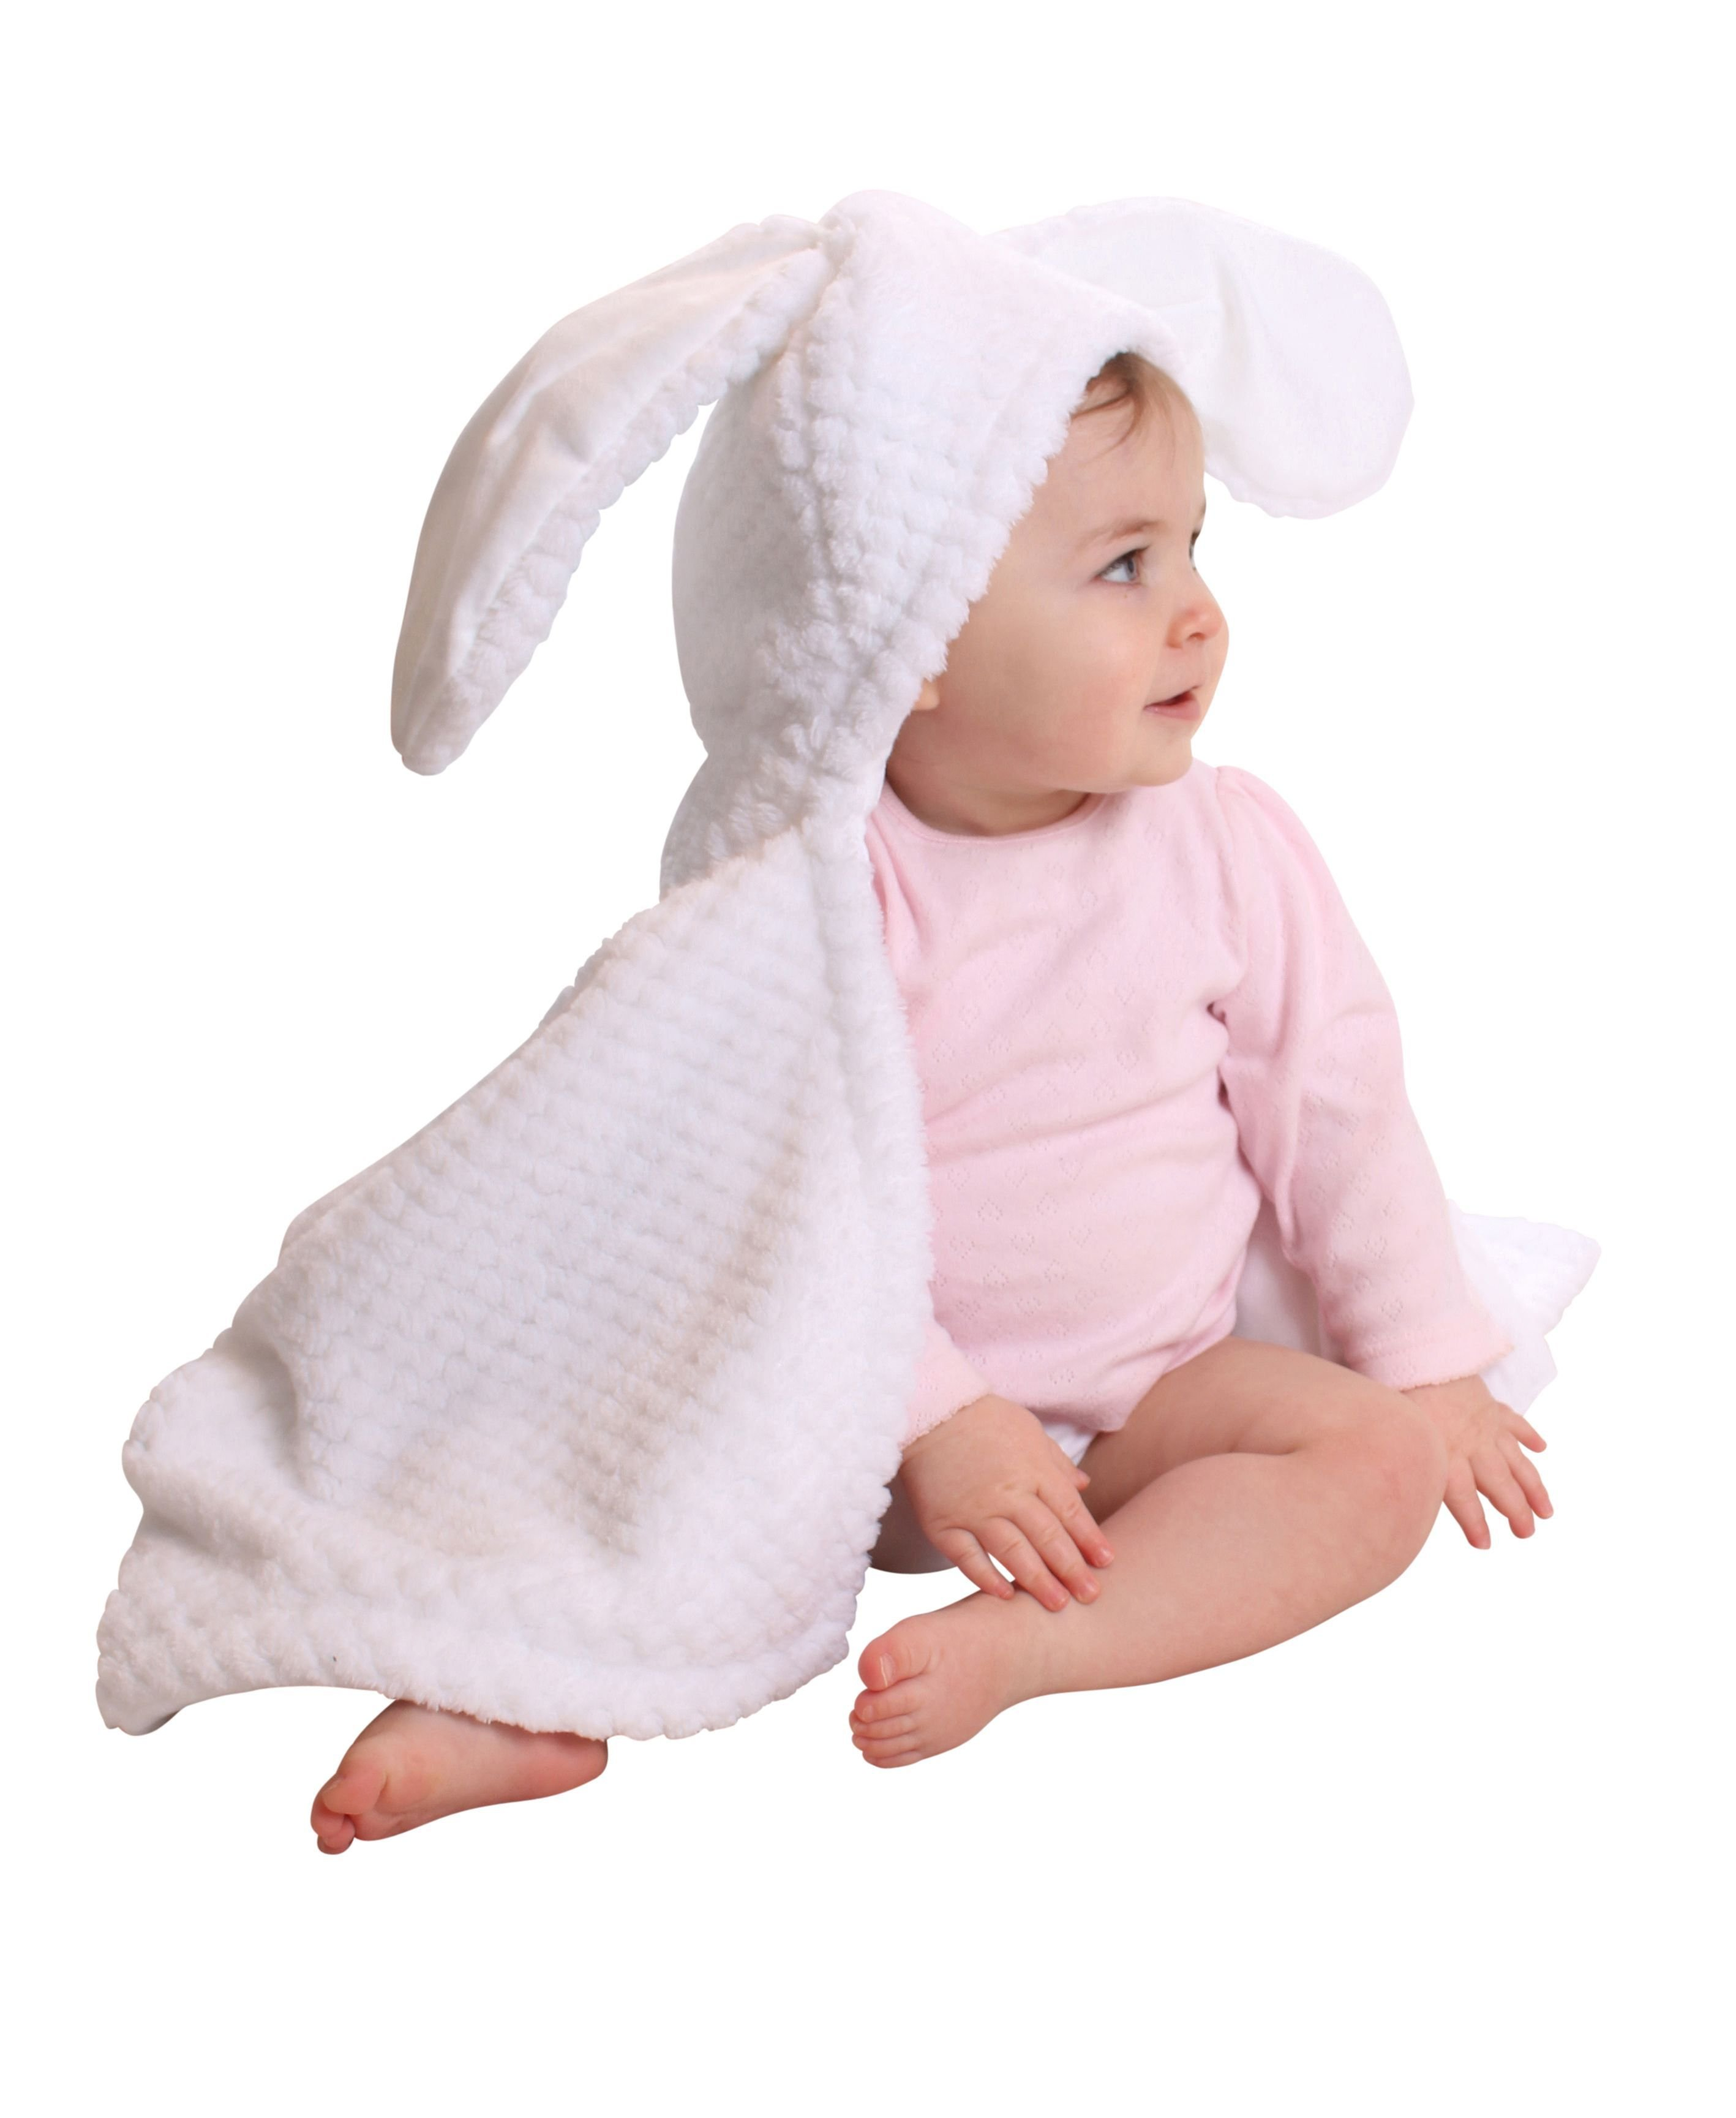 Image of Clair de Lune Honeycomb Hooded Ear Blanket - White.